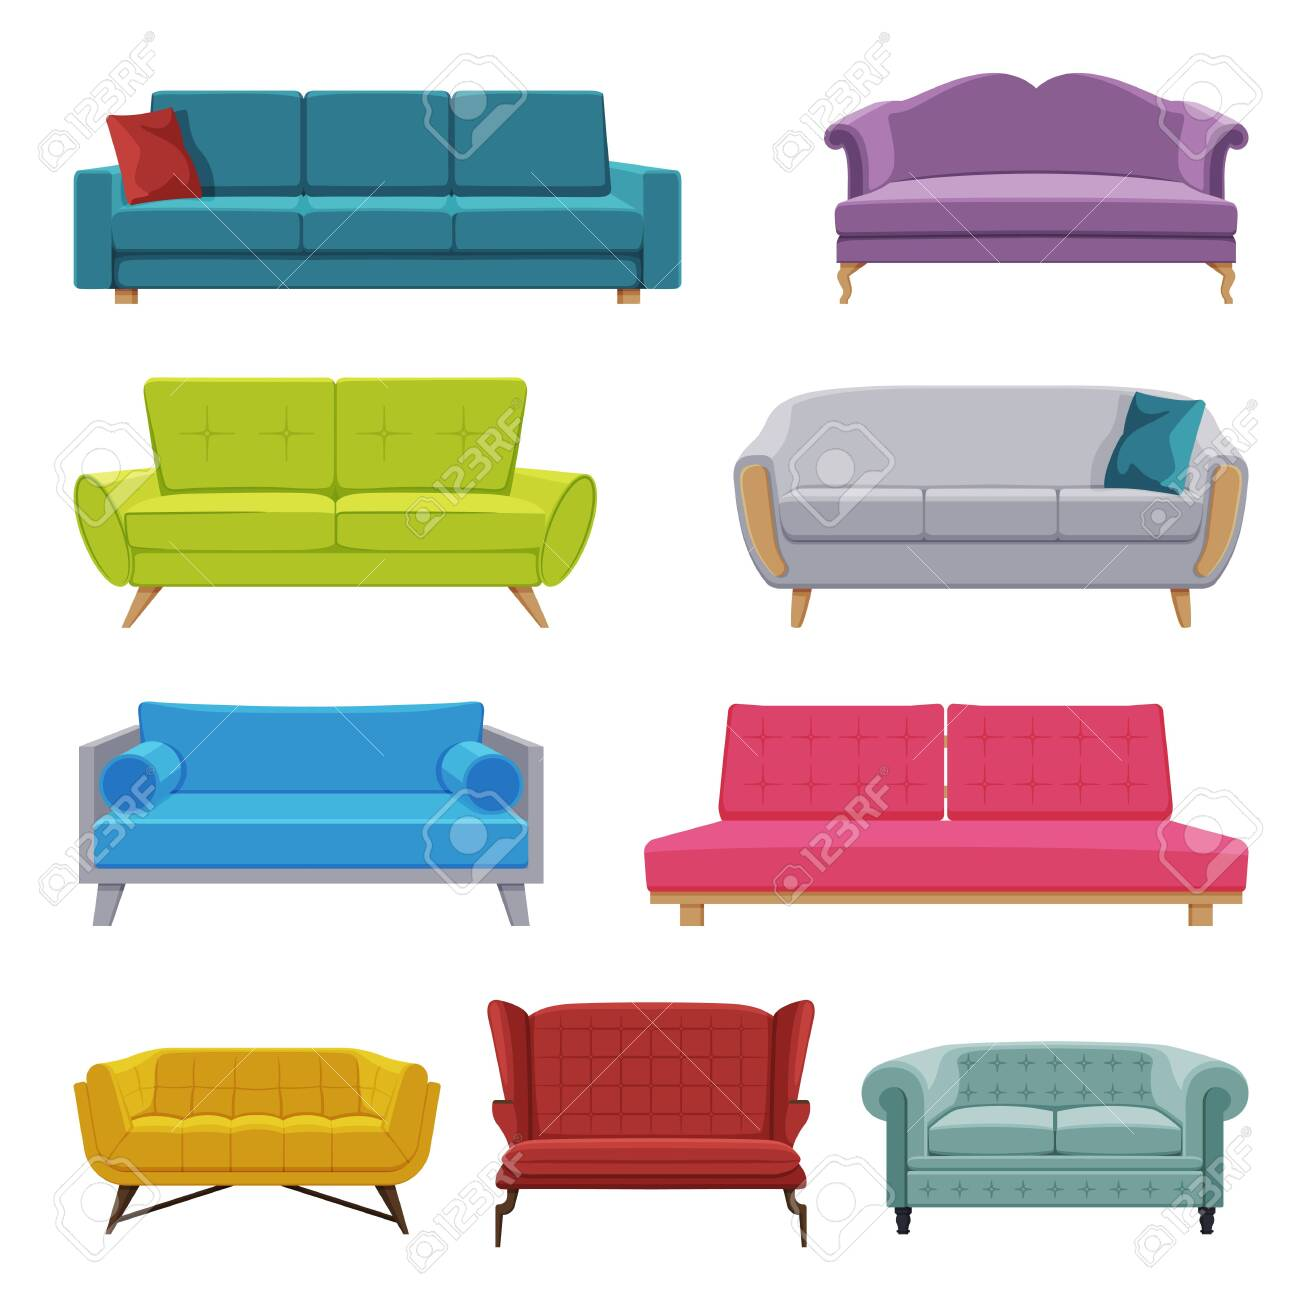 Comfortable Sofas Collection, Cozy Domestic or Office Furniture, Modern Interior Design Flat Vector Illustration - 153350601